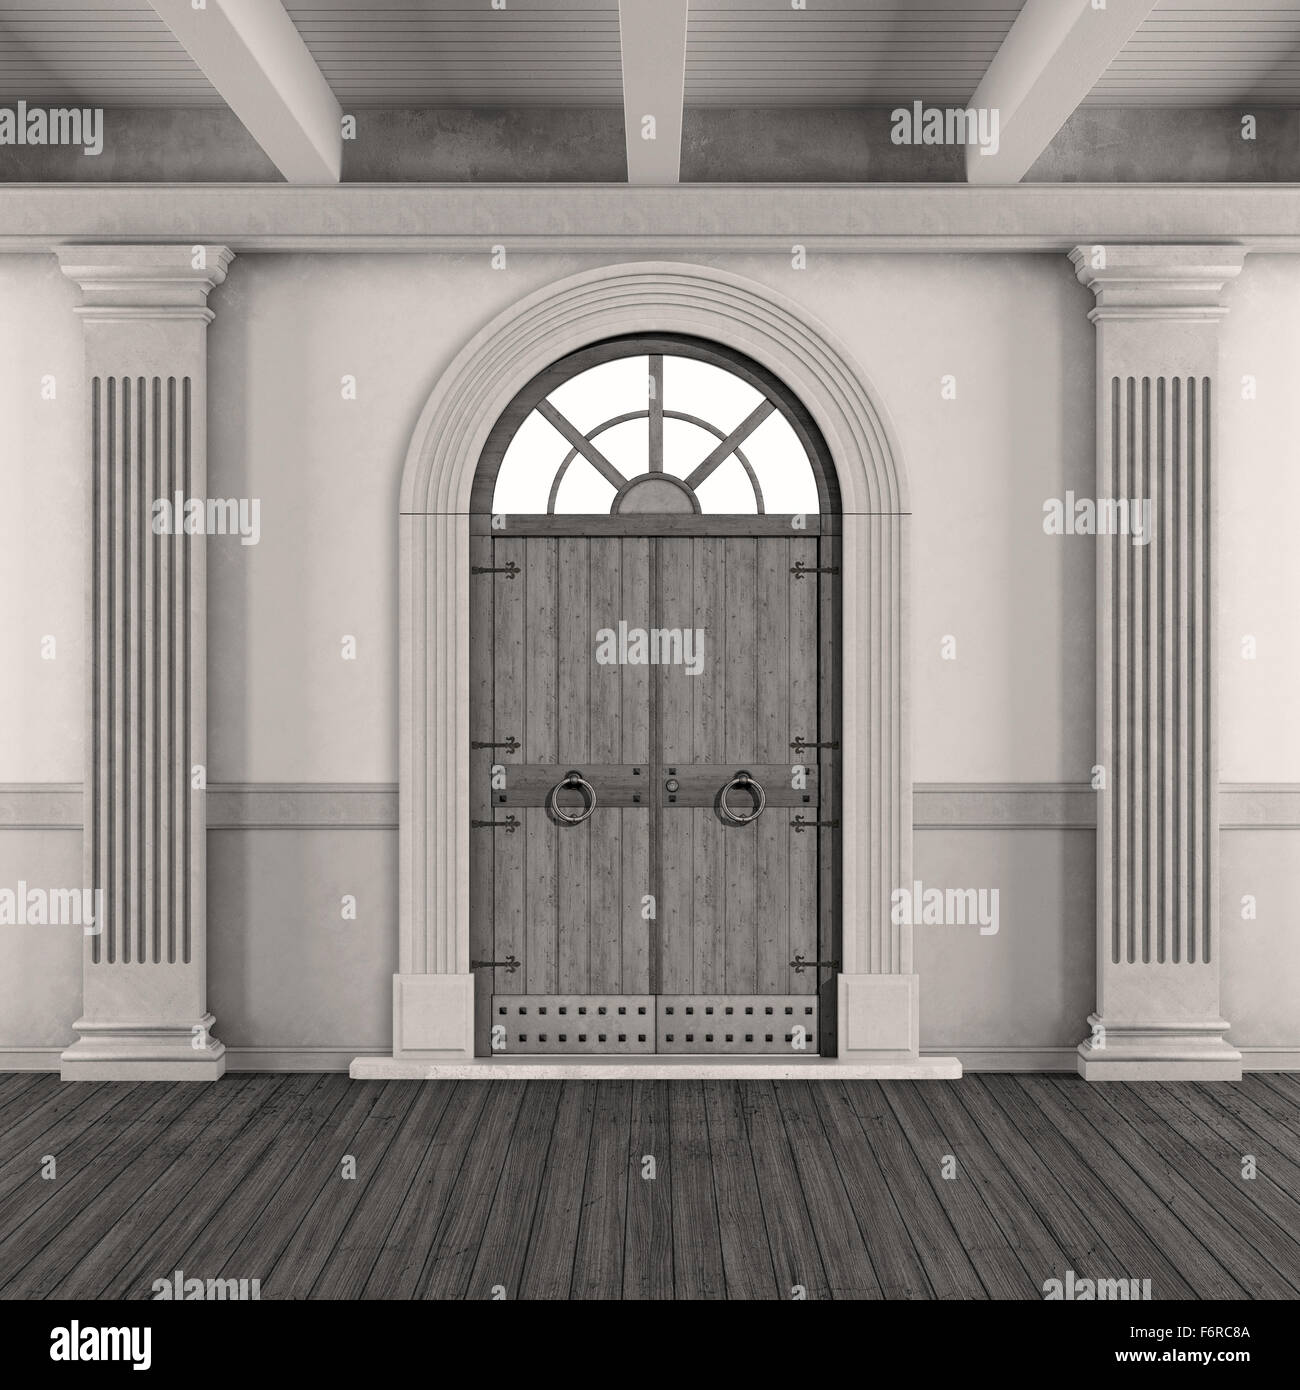 Black and white classic home entrance with old doorway and pilaster -3D Rendering - Stock Image